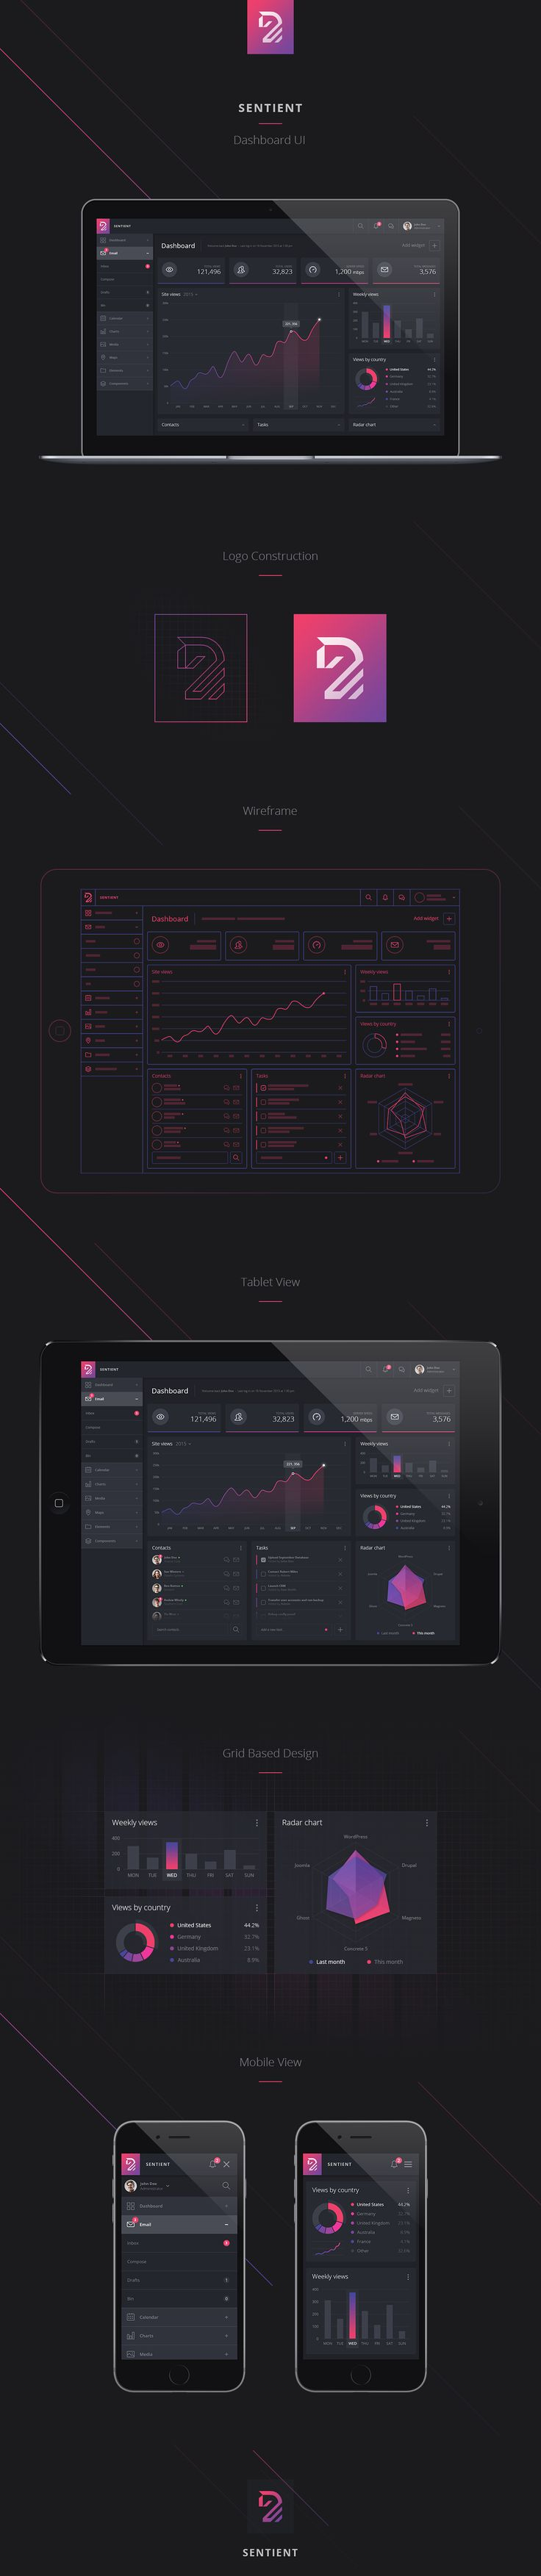 Sentient - Dashboard UI on Web Design Served